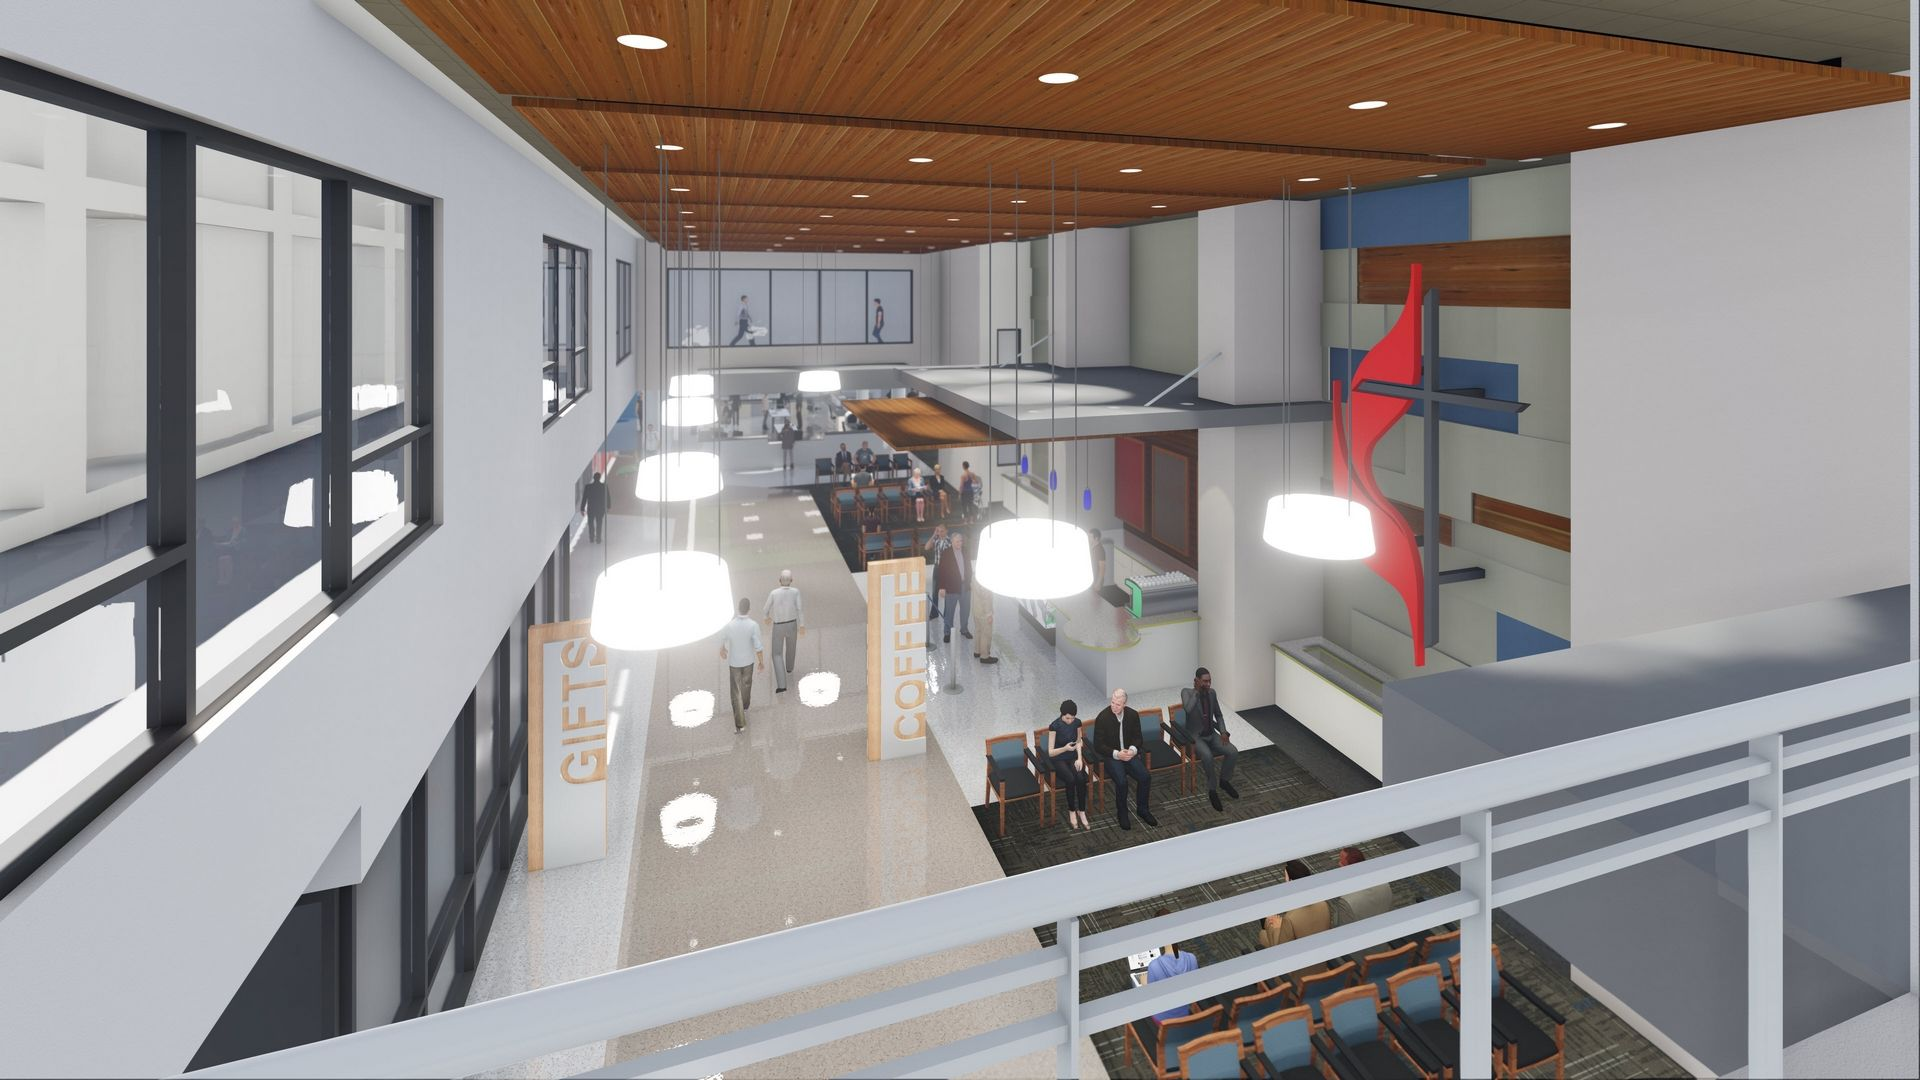 San Antonio TX THW Healthcare Design Interior Rendering